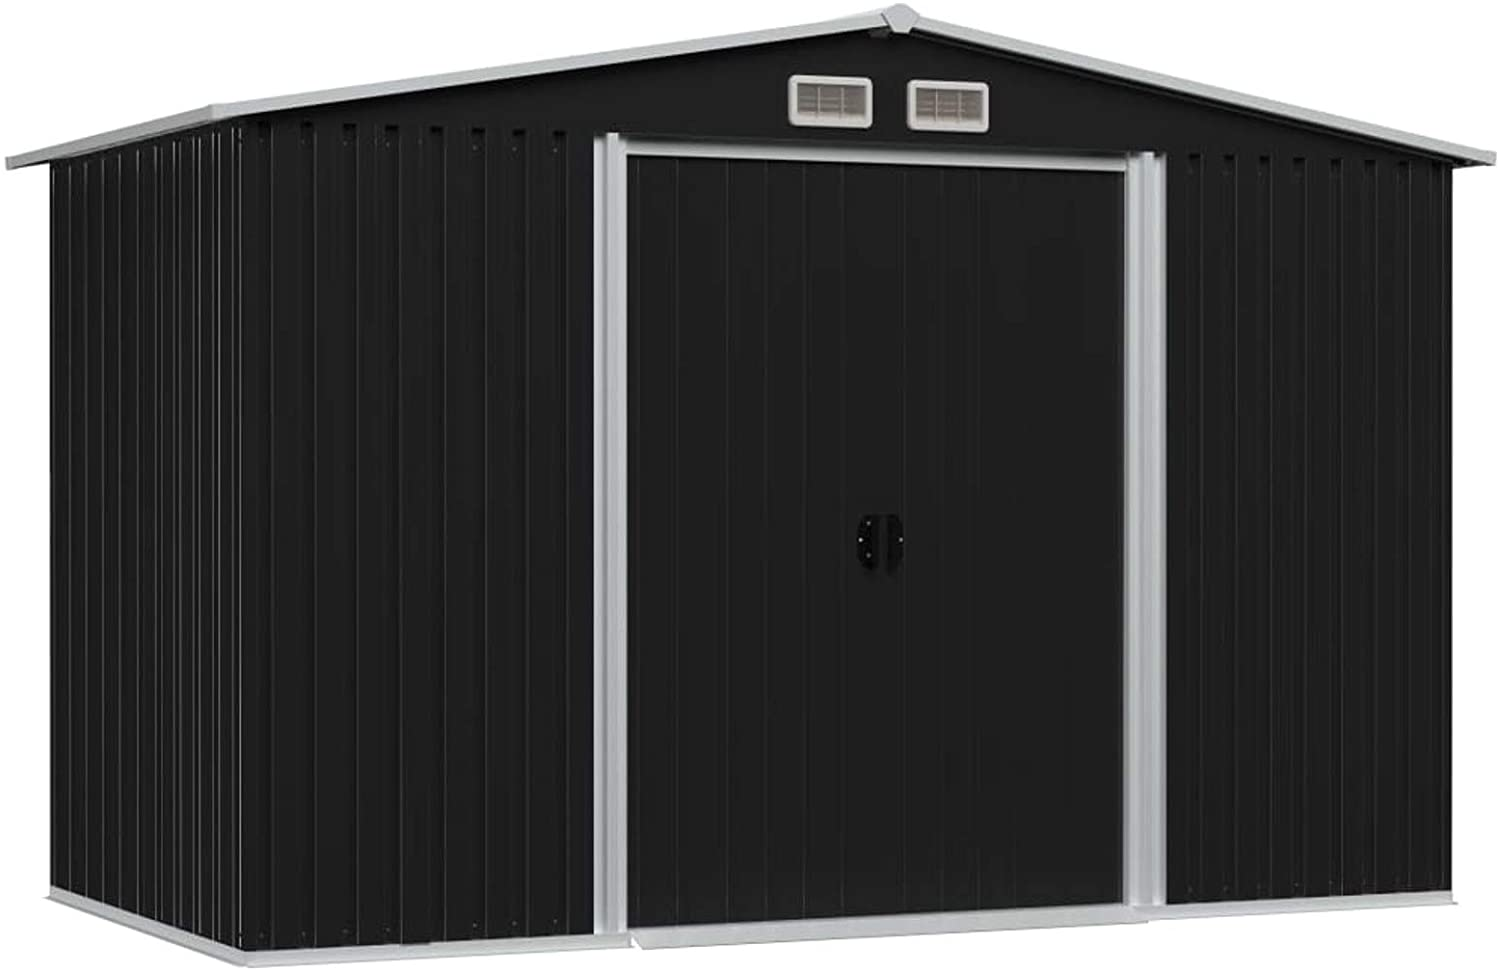 Festnight Garden Storage Shed with 4 Double Sl Vents Metal National List price uniform free shipping Steel